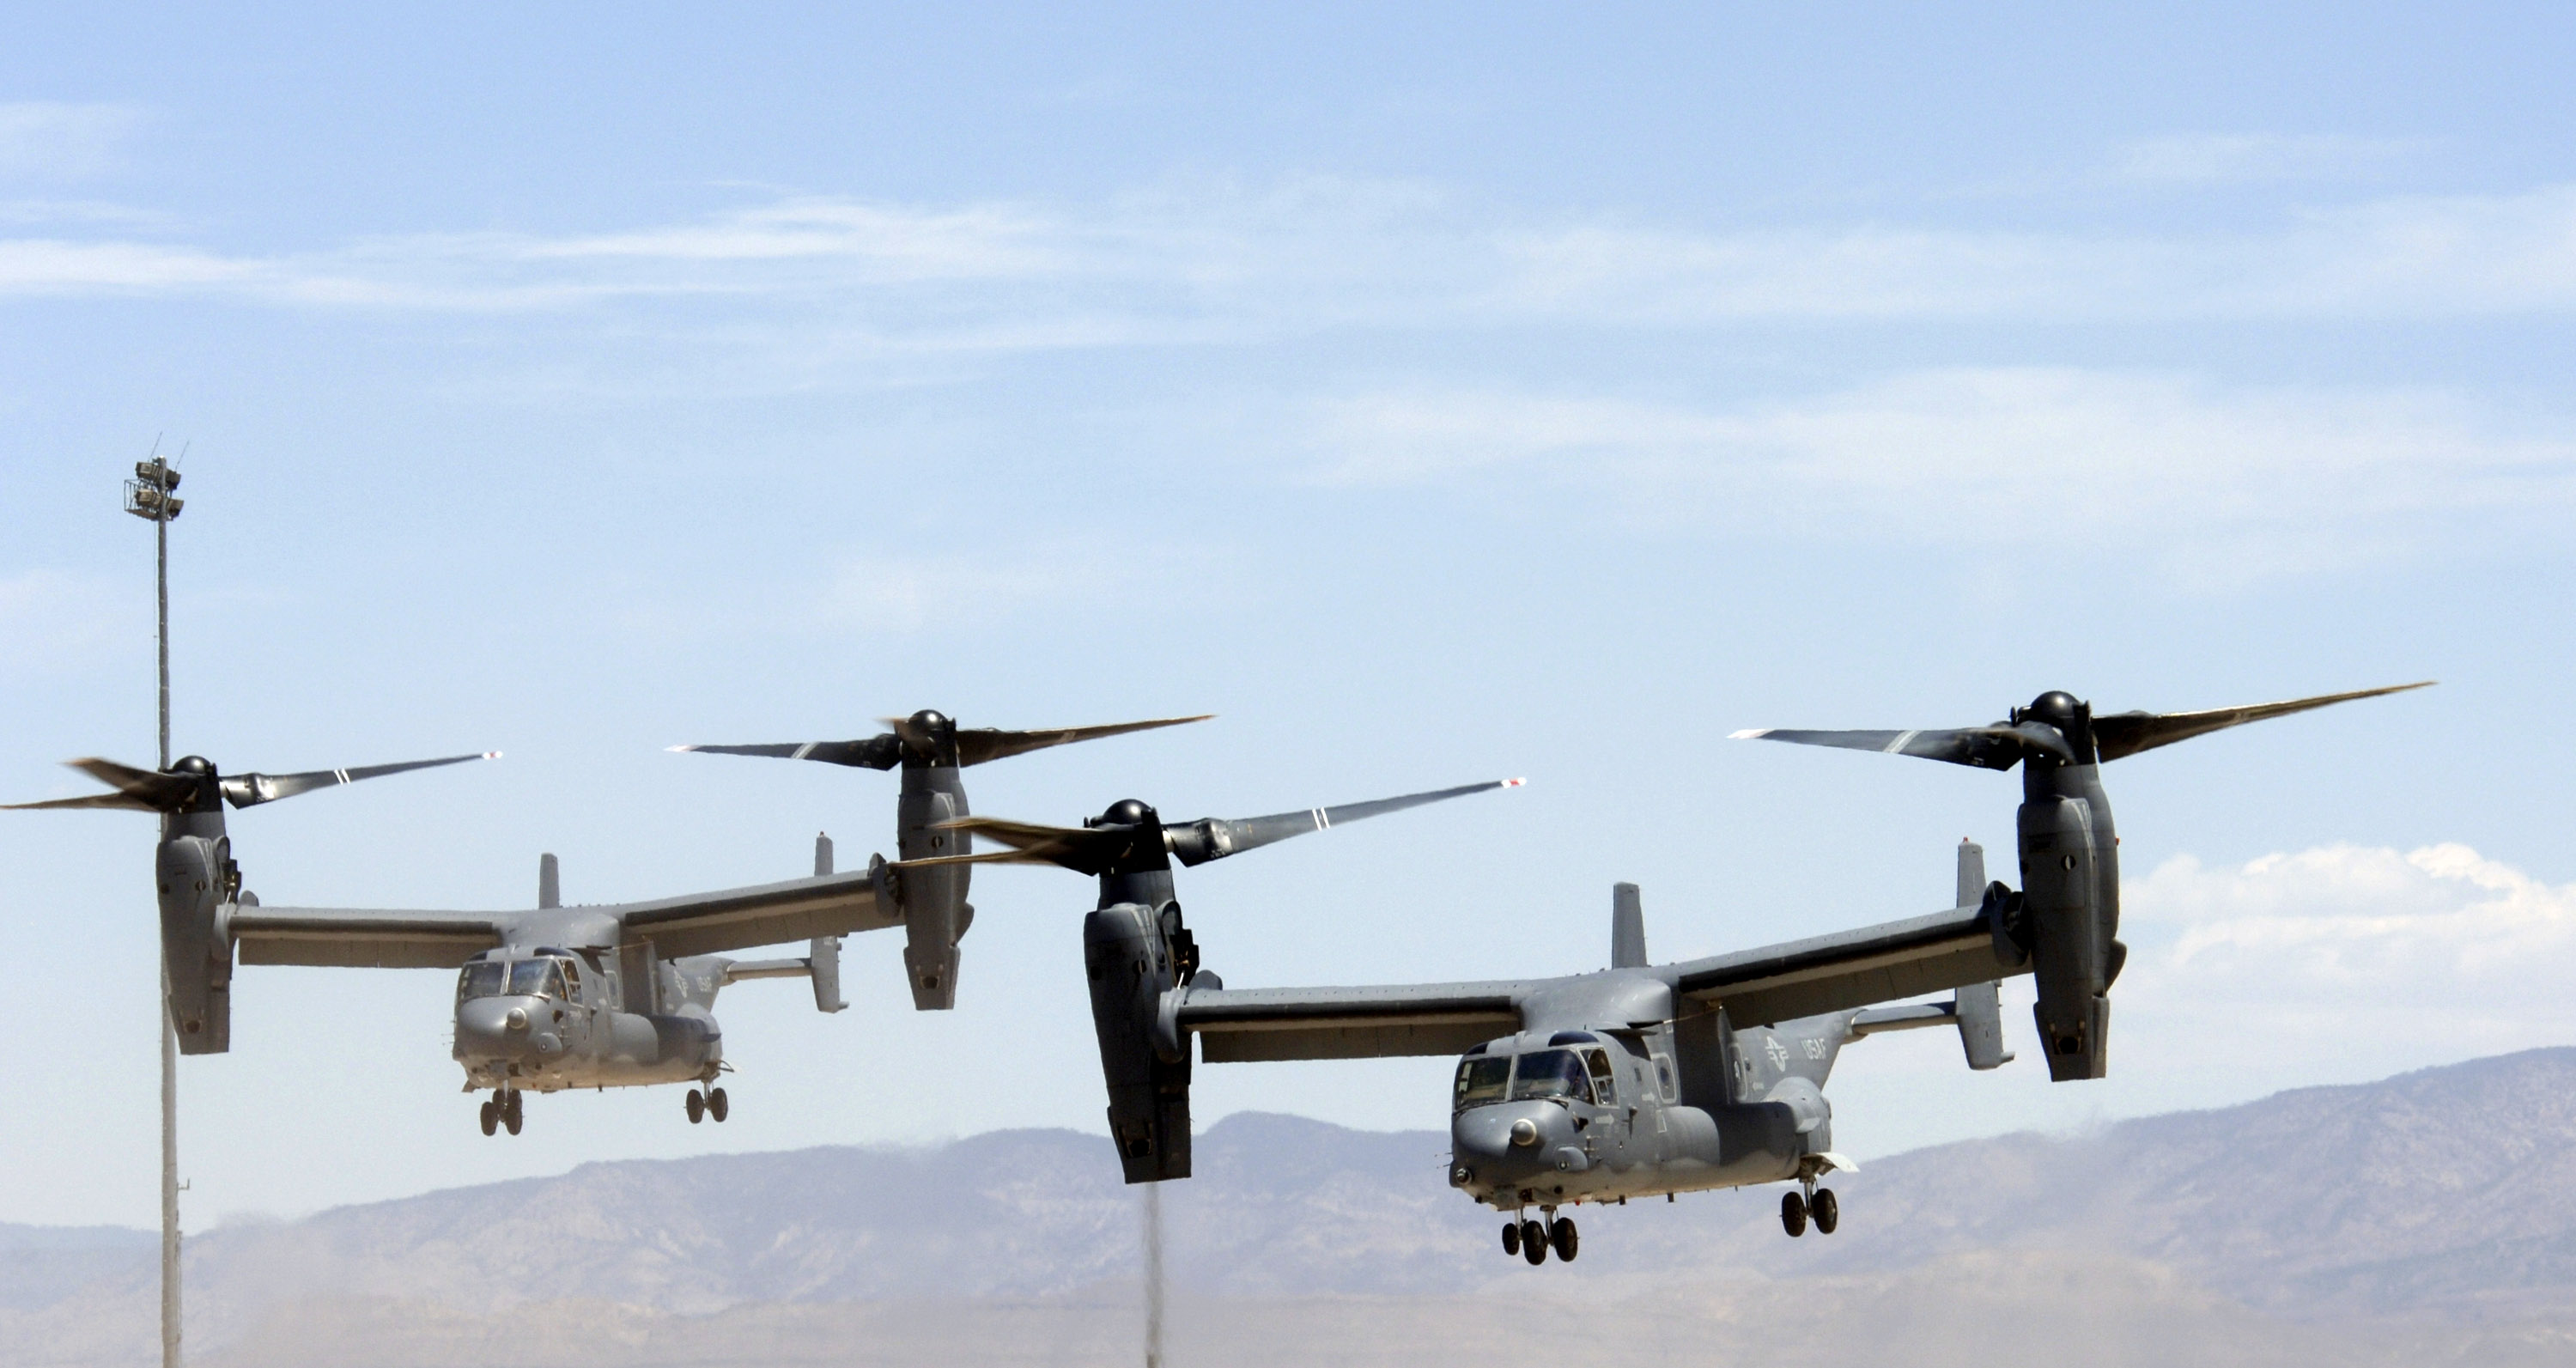 "Two Air Force CV-22 Ospreys prepare to land at Holloman Air Force Base, N.M., on Friday, May 26, 2006. These Osprey are two of only three in the Air Force inventory. The Ospreys and their crews are taking part in the filming of the movie, ""Transformers."" (U.S. Air Force photo/Airman 1st Class Russell Scalf)"